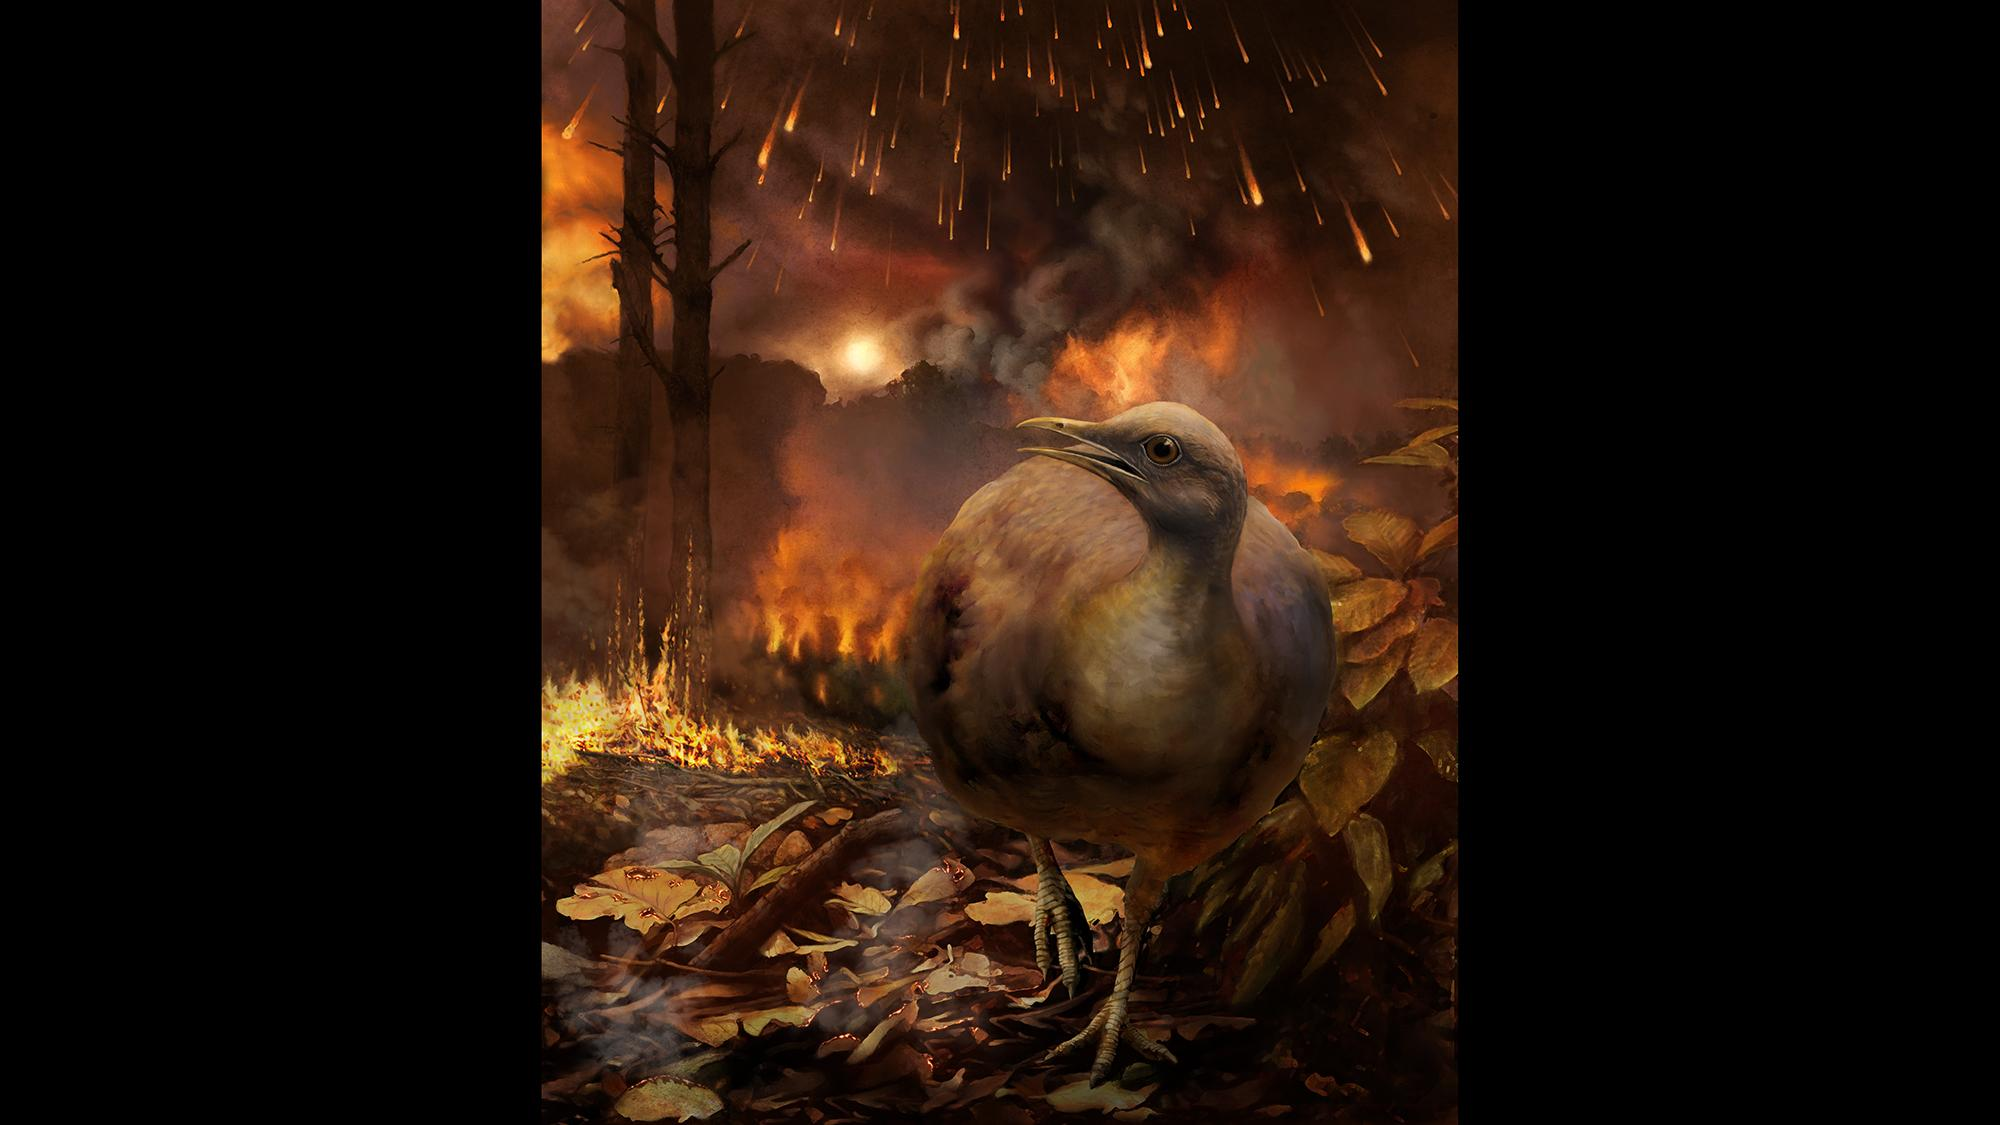 An illustration showing the impact of the Chicxulub asteroid about 66 million years ago, which led to the extinction of dinosaurs and also killed tree-dwelling birds. (Phillip M. Krzeminski)